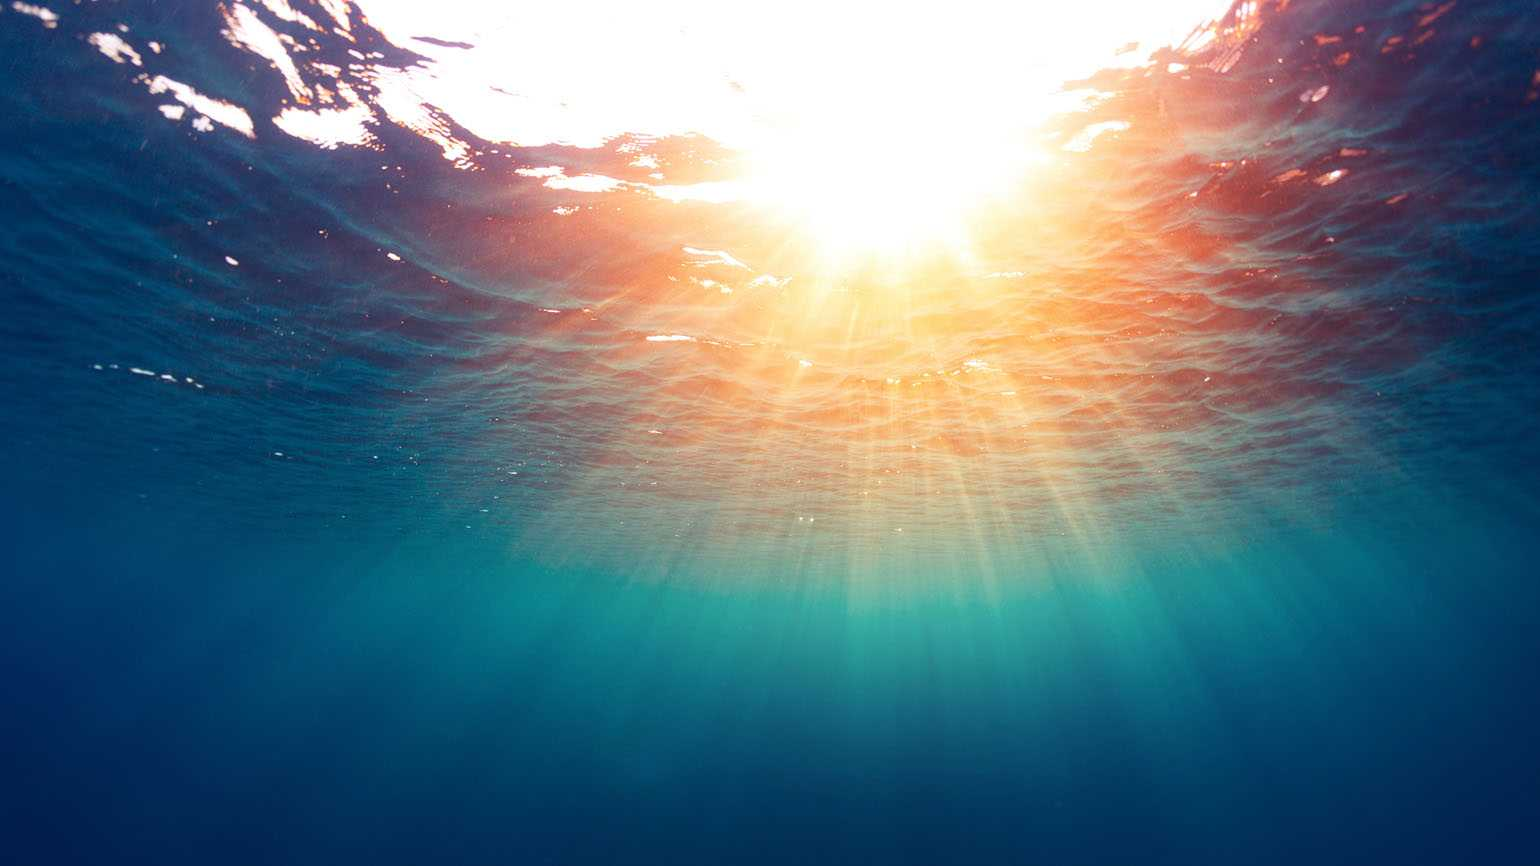 A divine light seen from underwater.